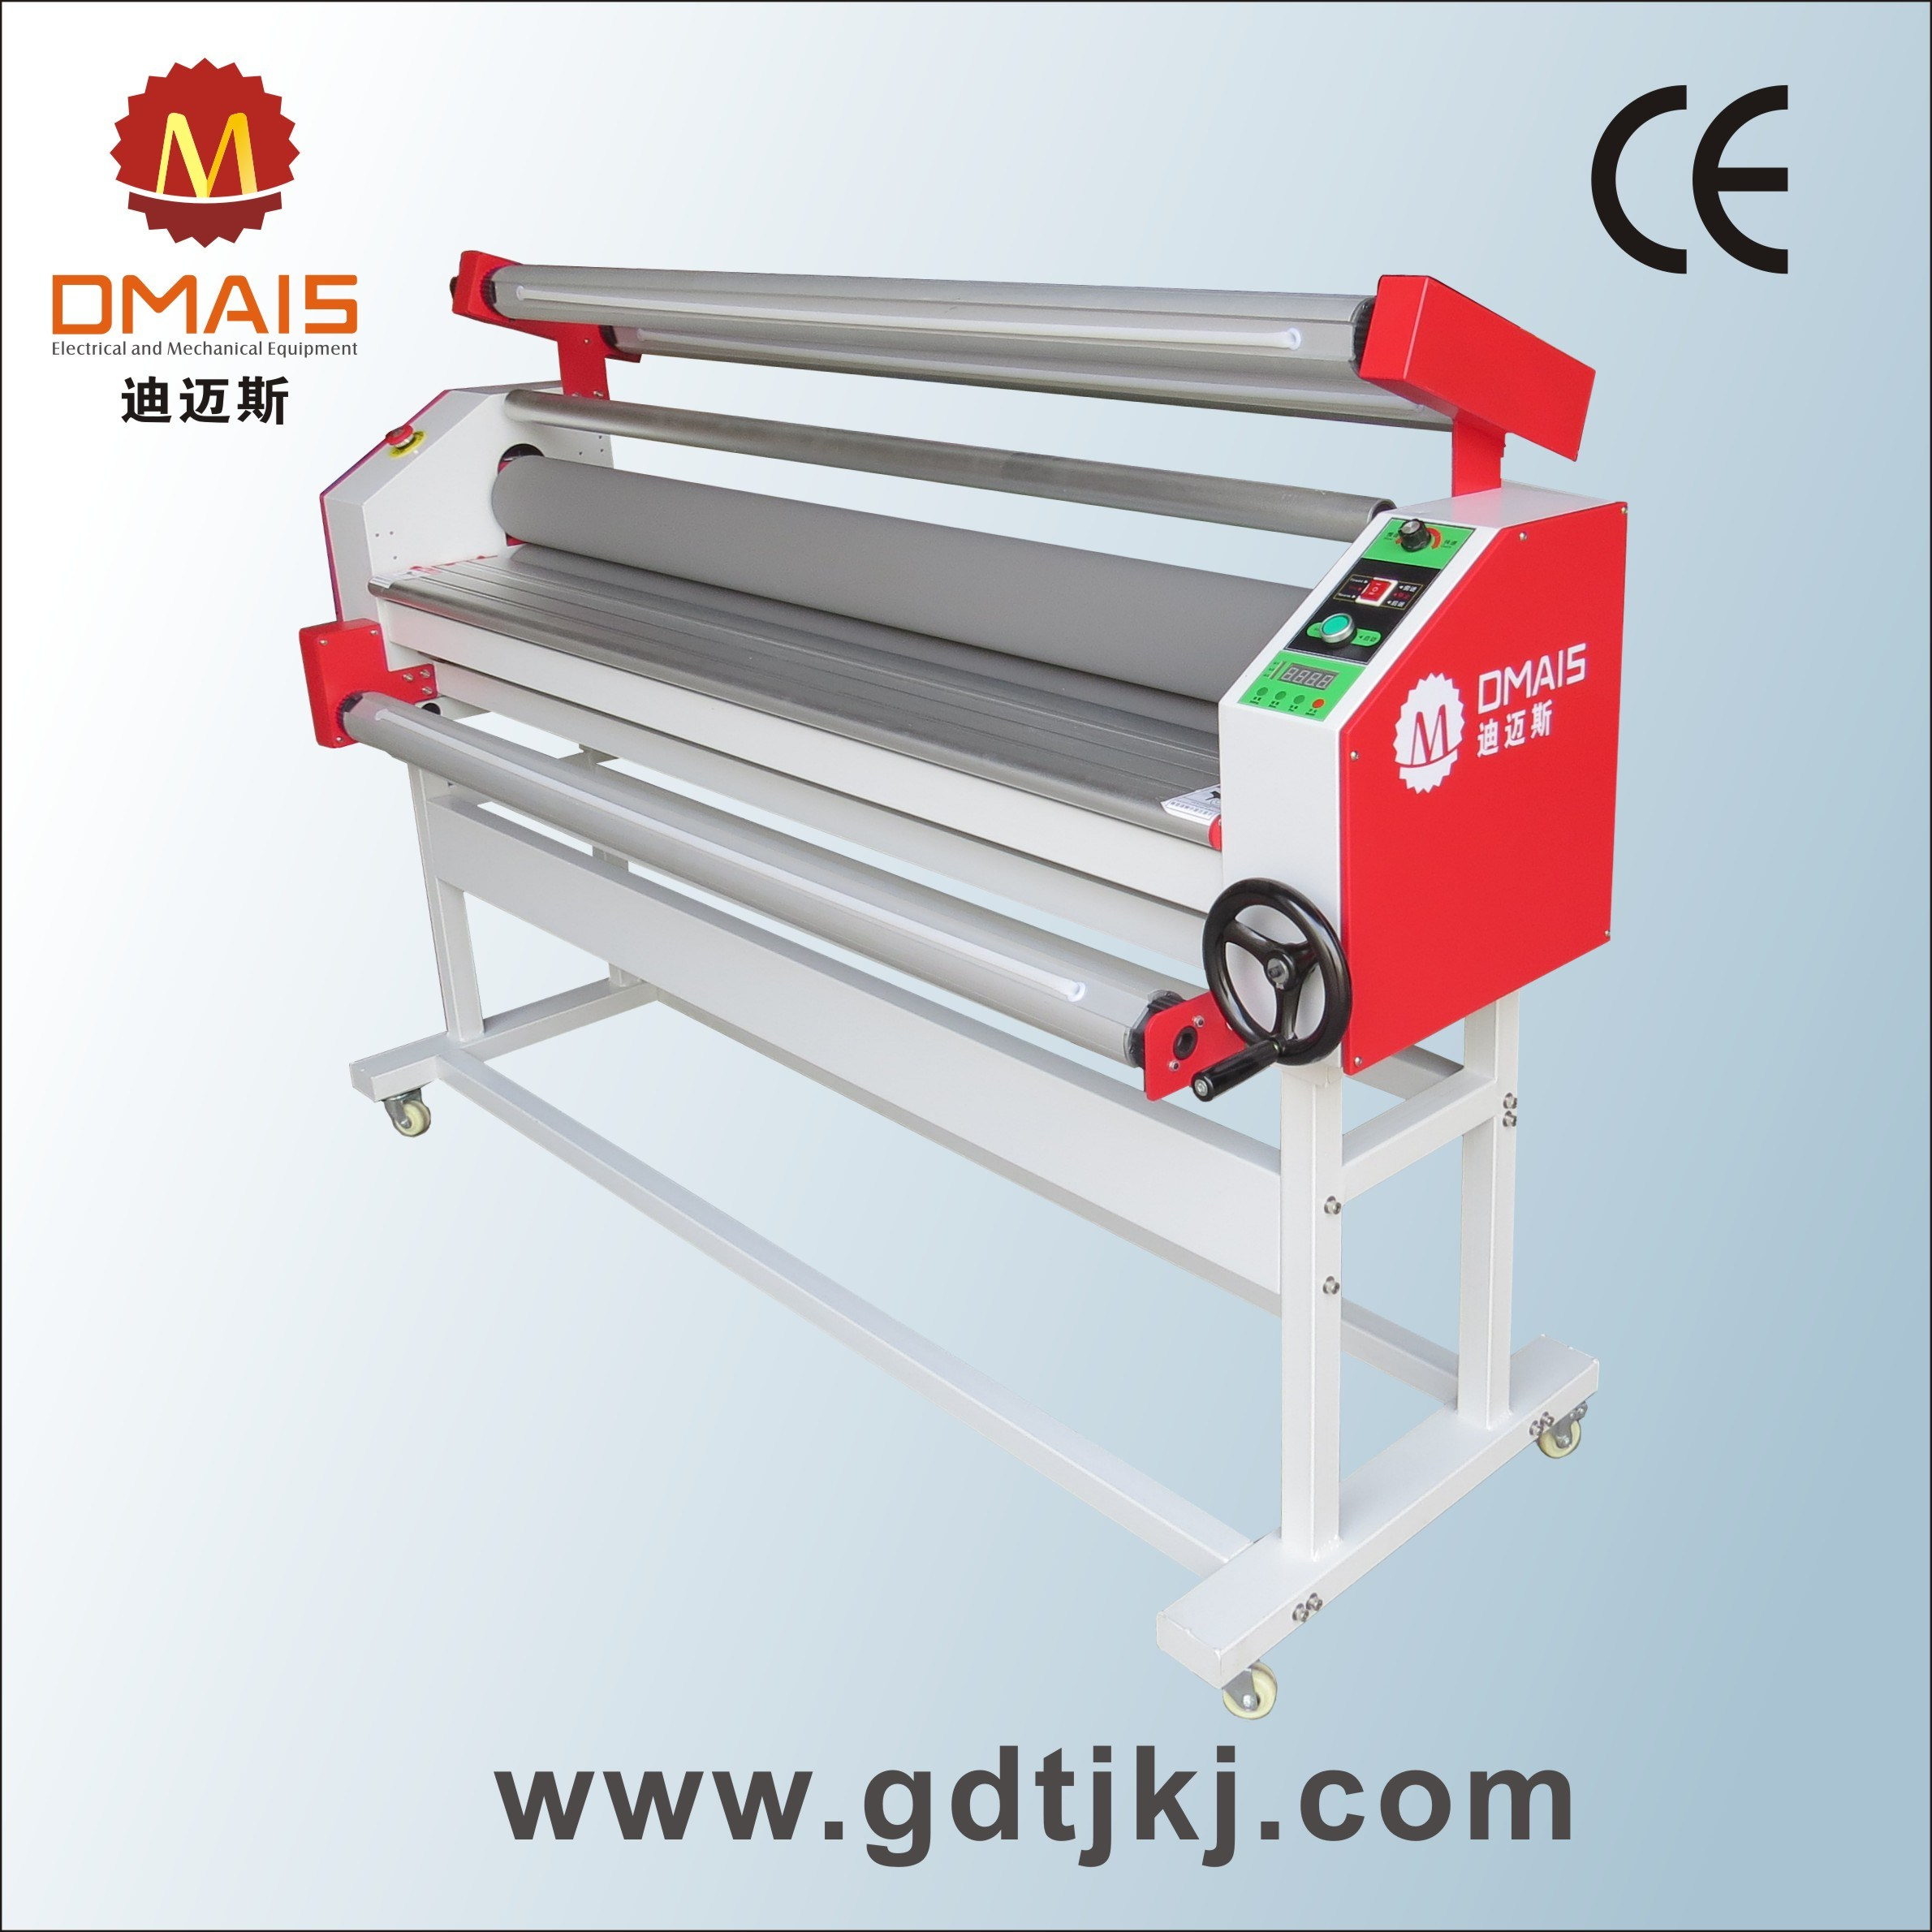 Dmais Hot and Cold Laminator-Roll to Roll Laminating Machine